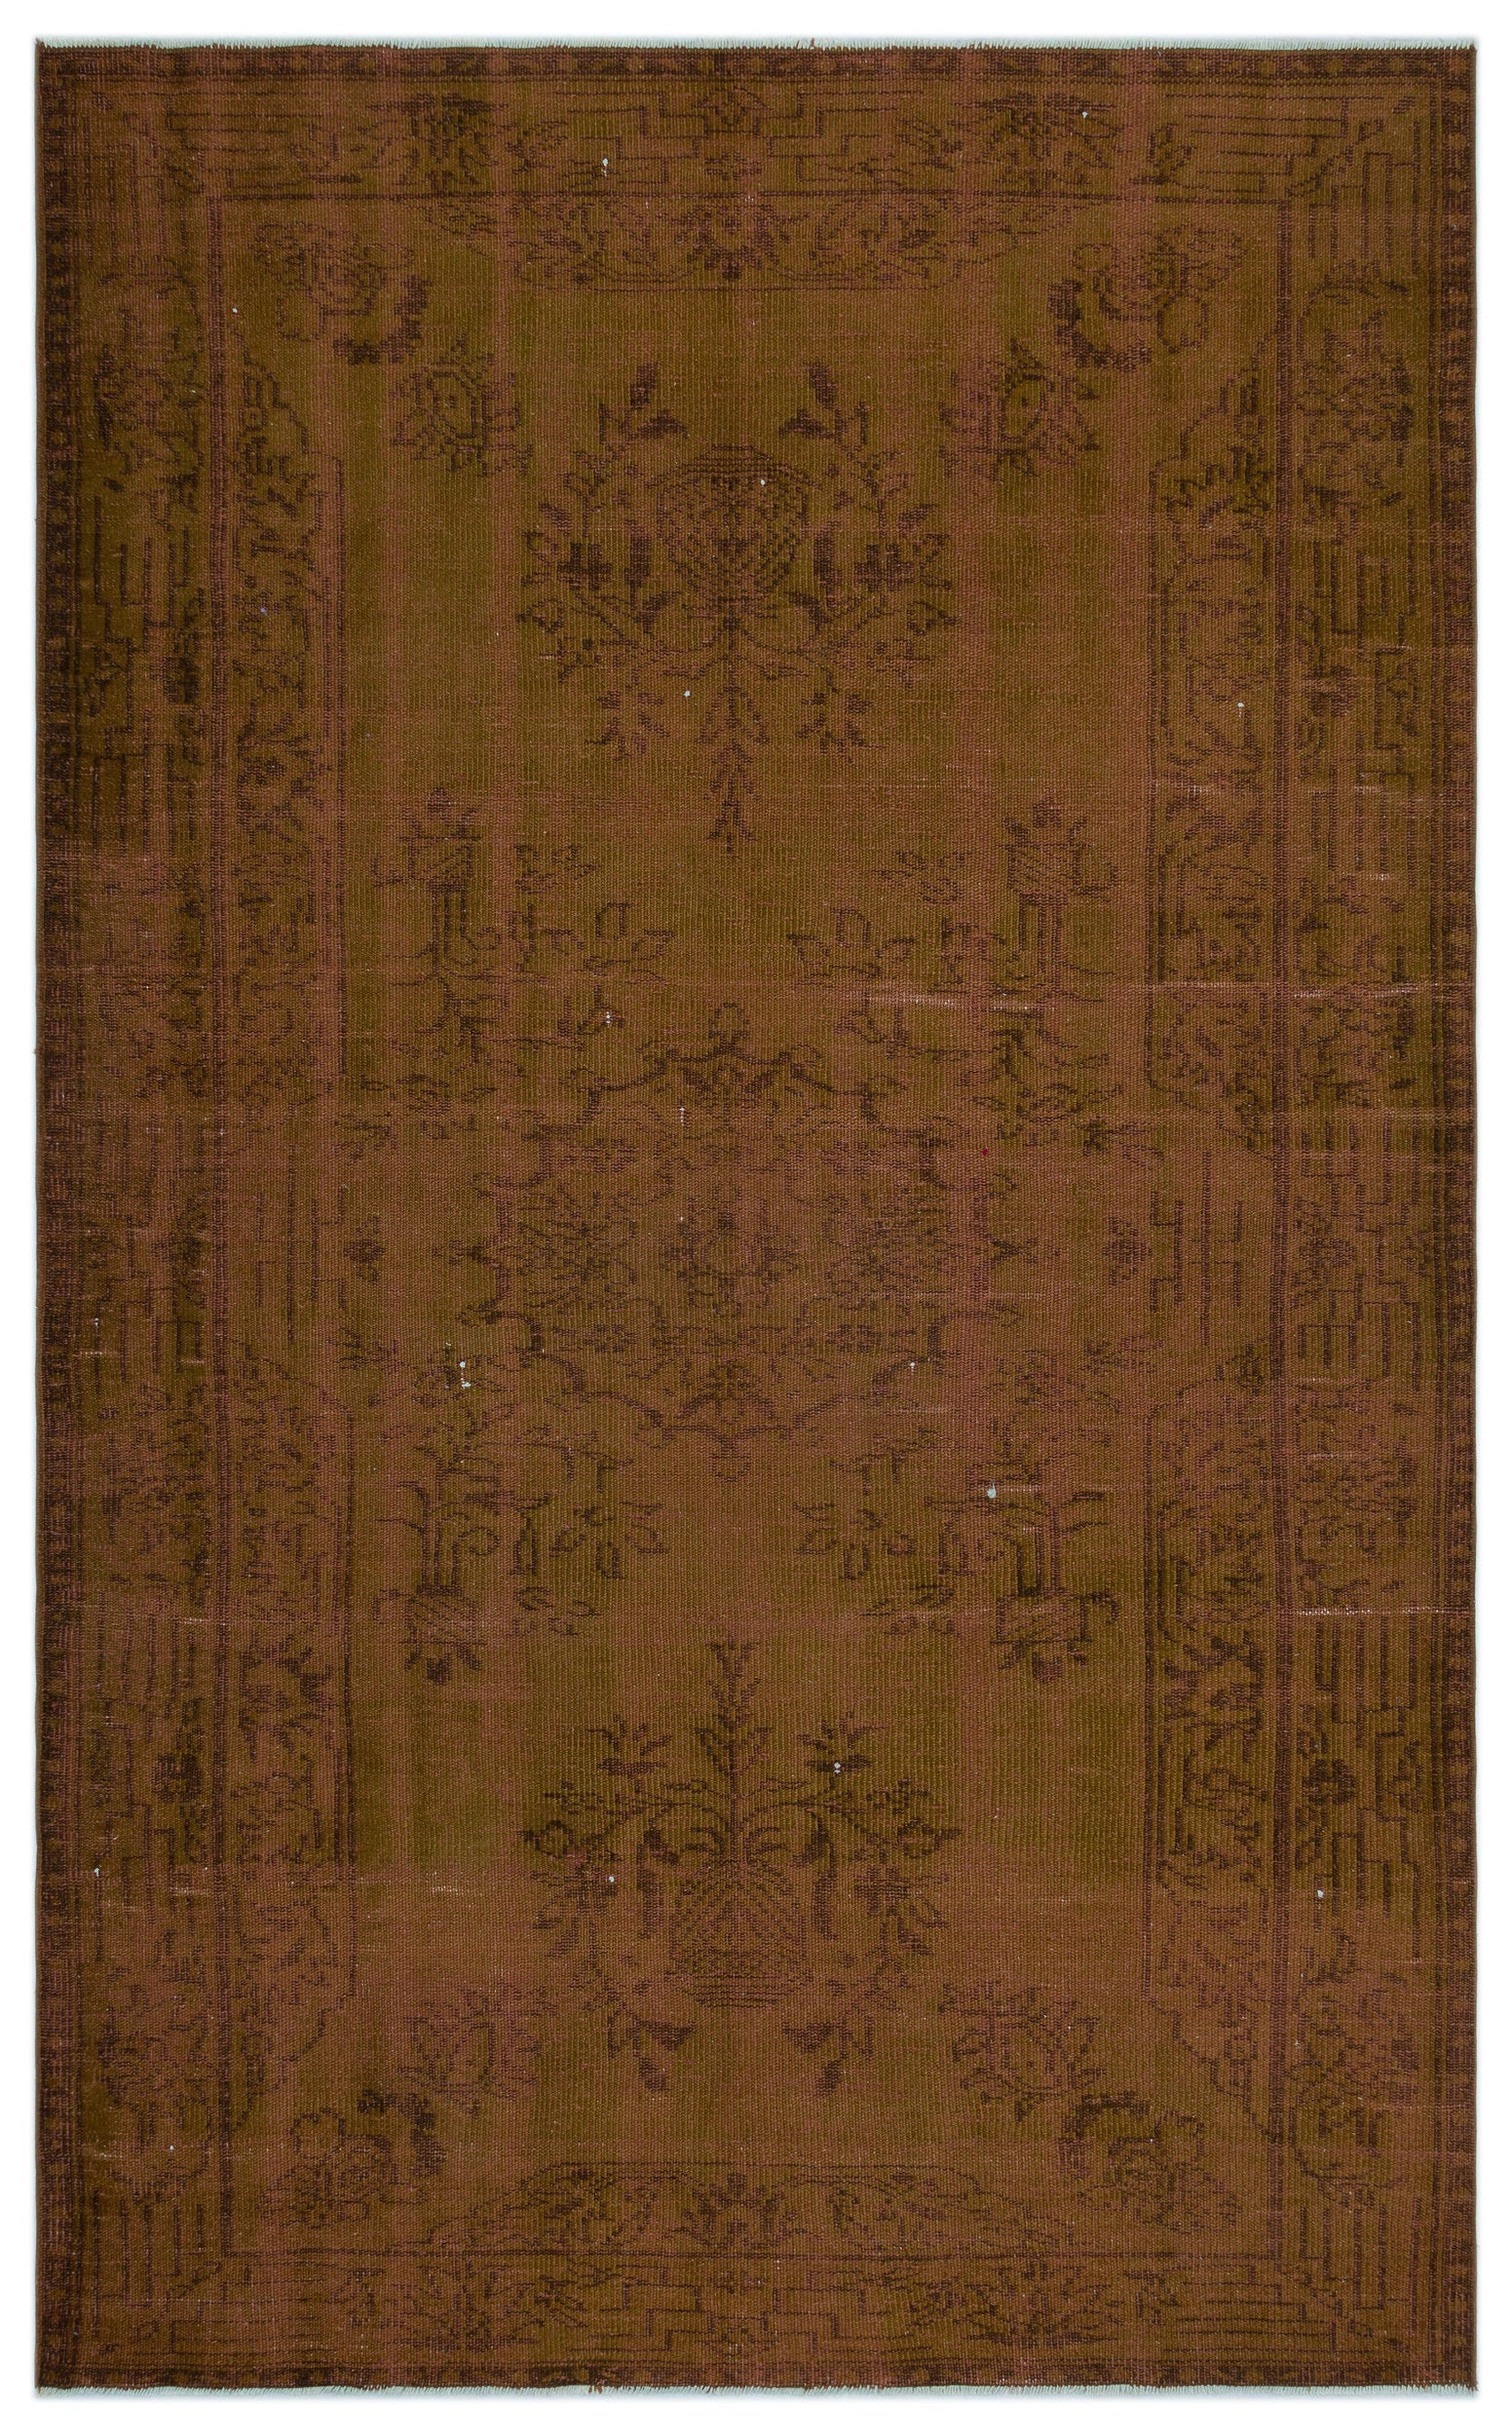 Brown Over Dyed Vintage Rug 5'10'' x 9'3'' ft 177 x 283 cm